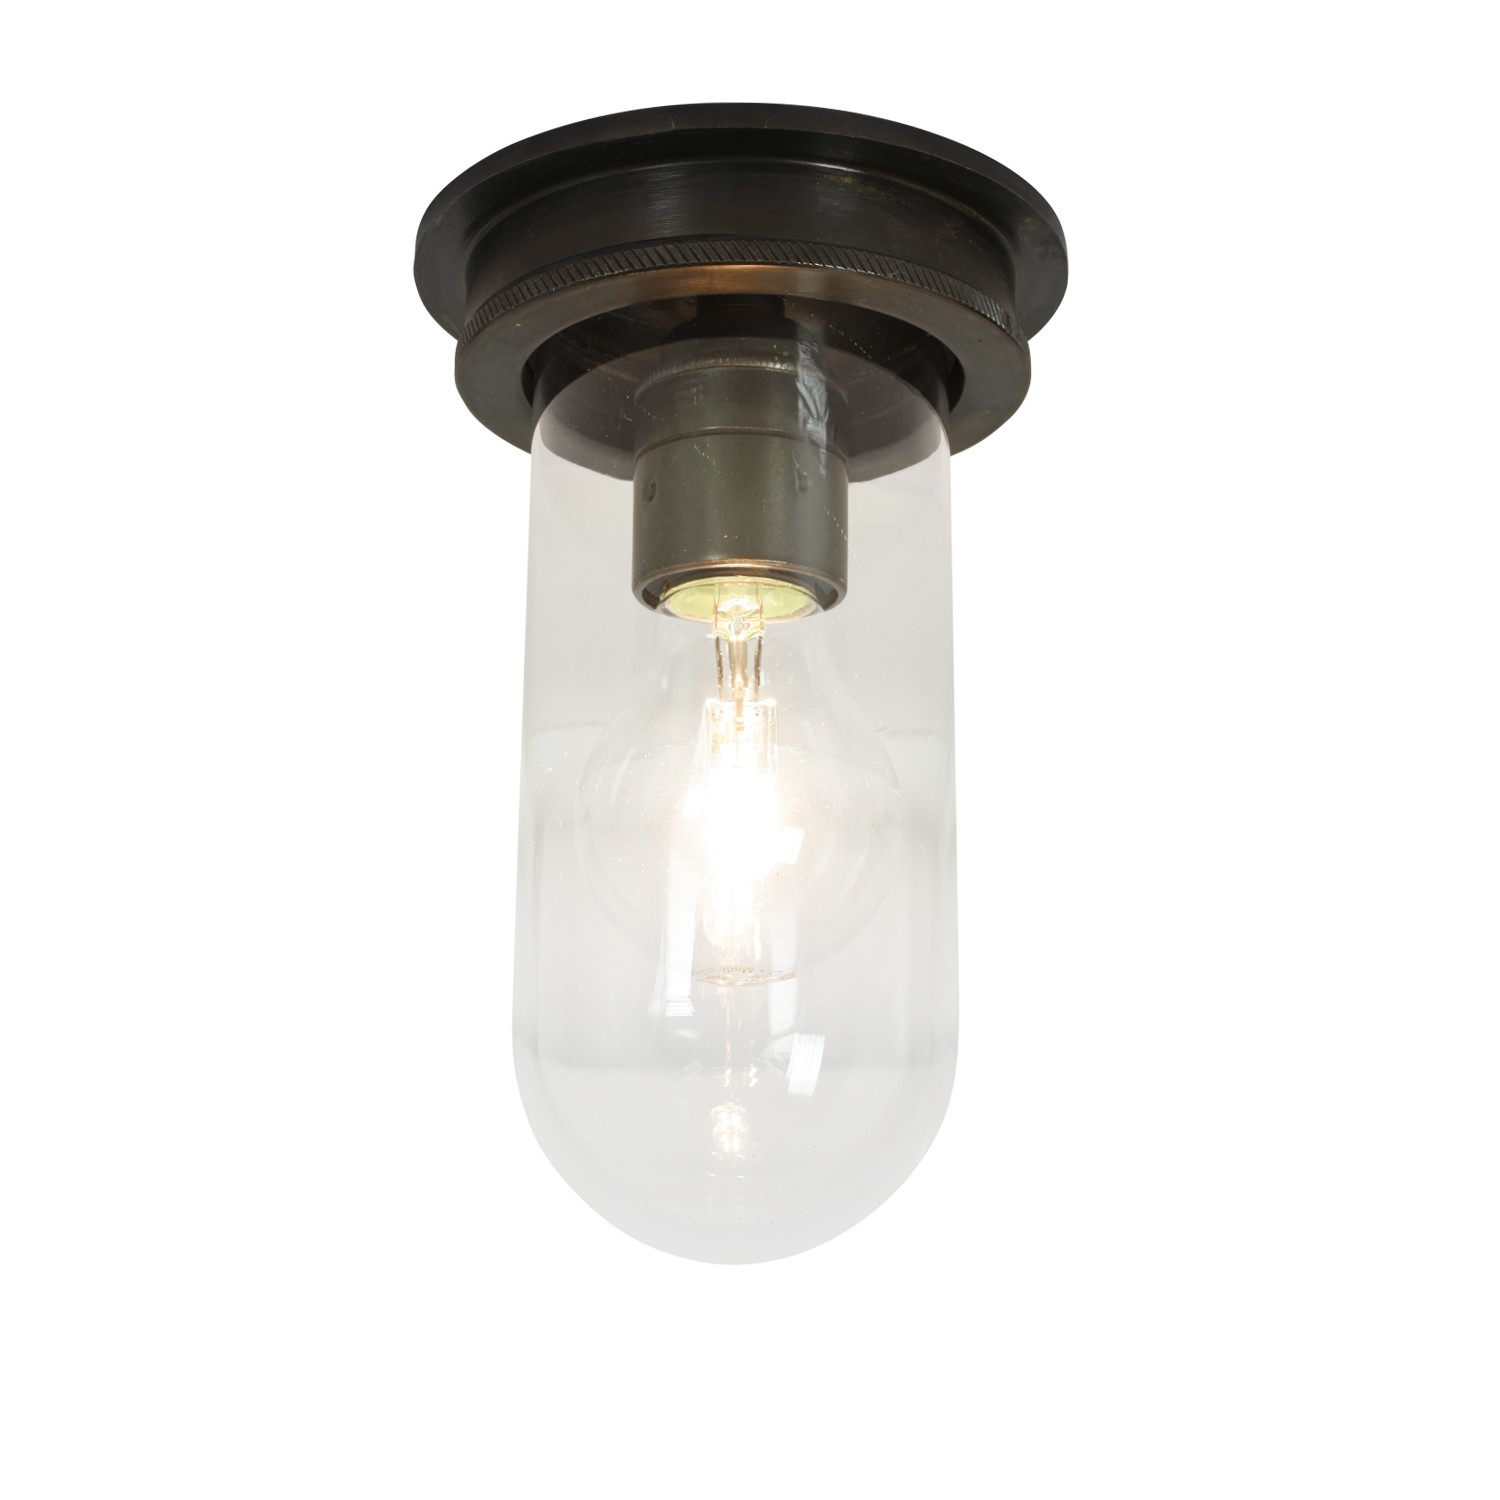 Ship's Companionway Light 7202 Weathered Brass, Clear Glass